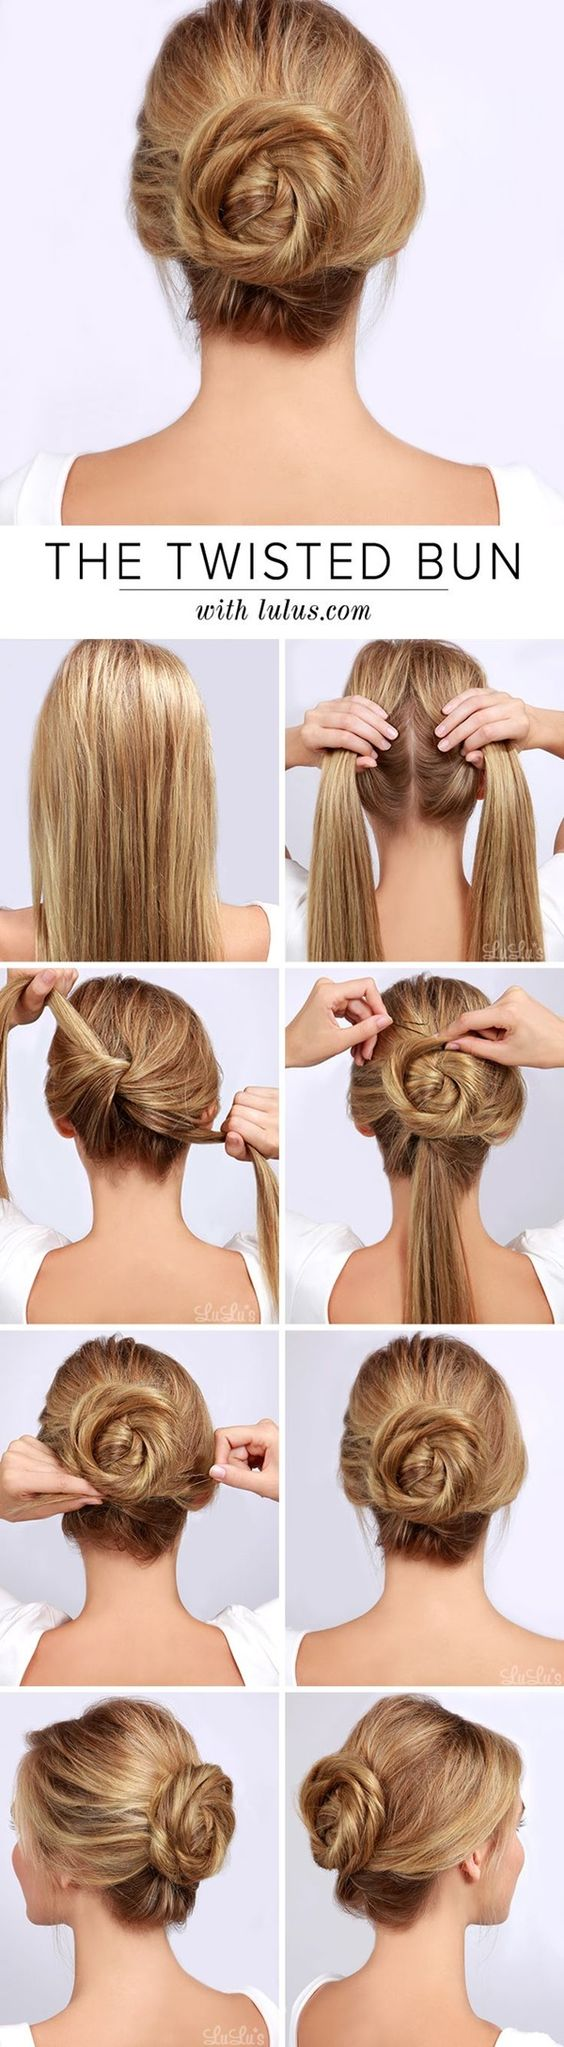 Hair Styles Easy 12 Easy Hairstyles For Any And All Lazy Girls  Pretty Designs